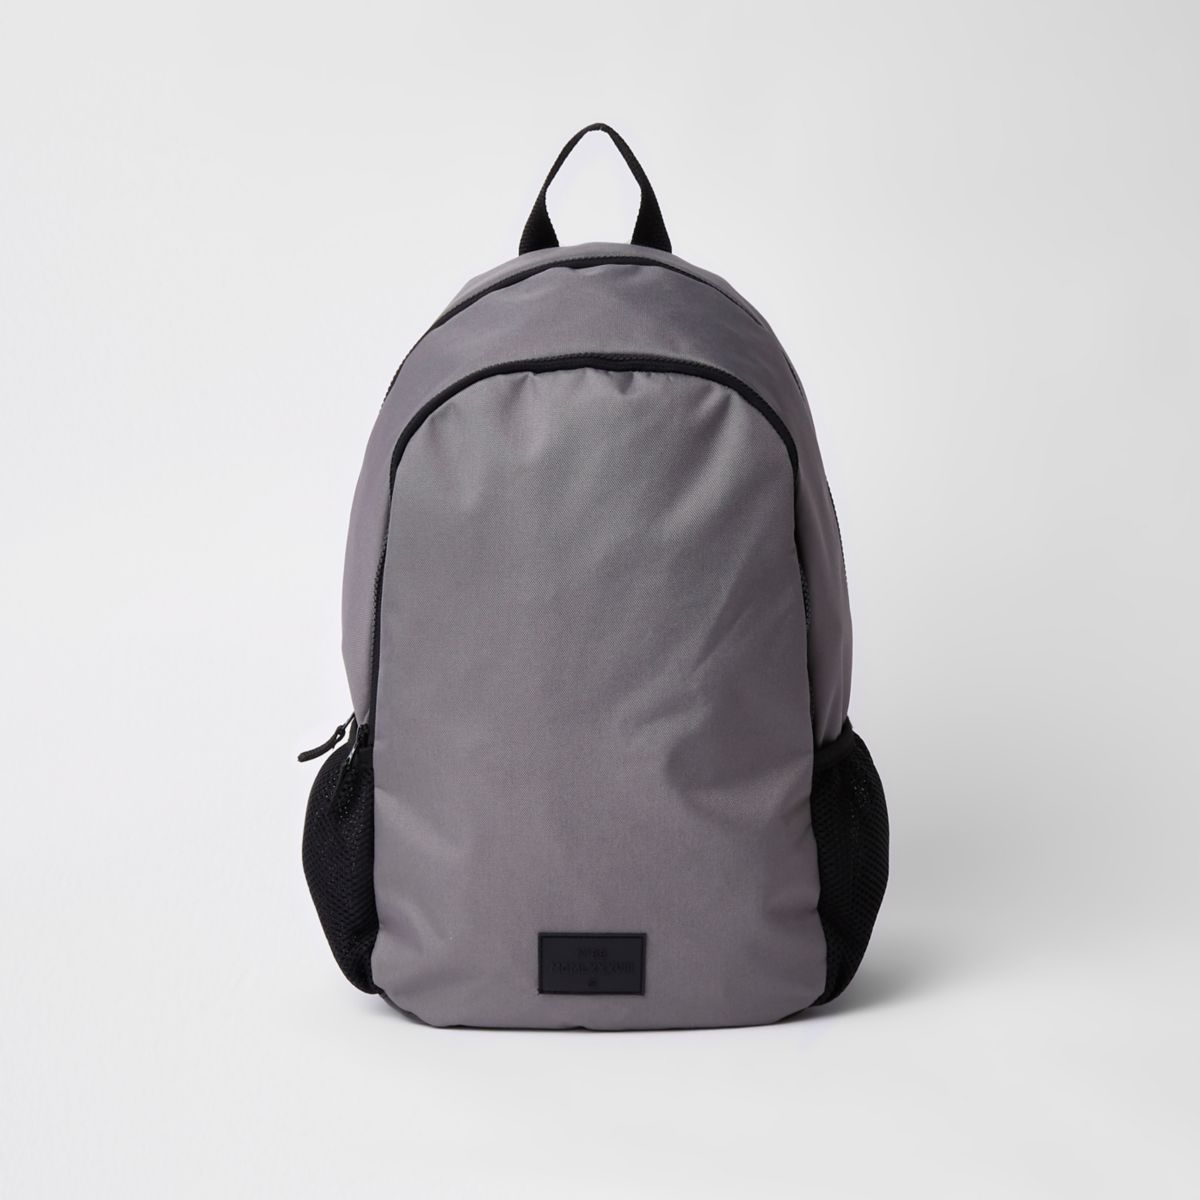 Grey double zip compartment backpack